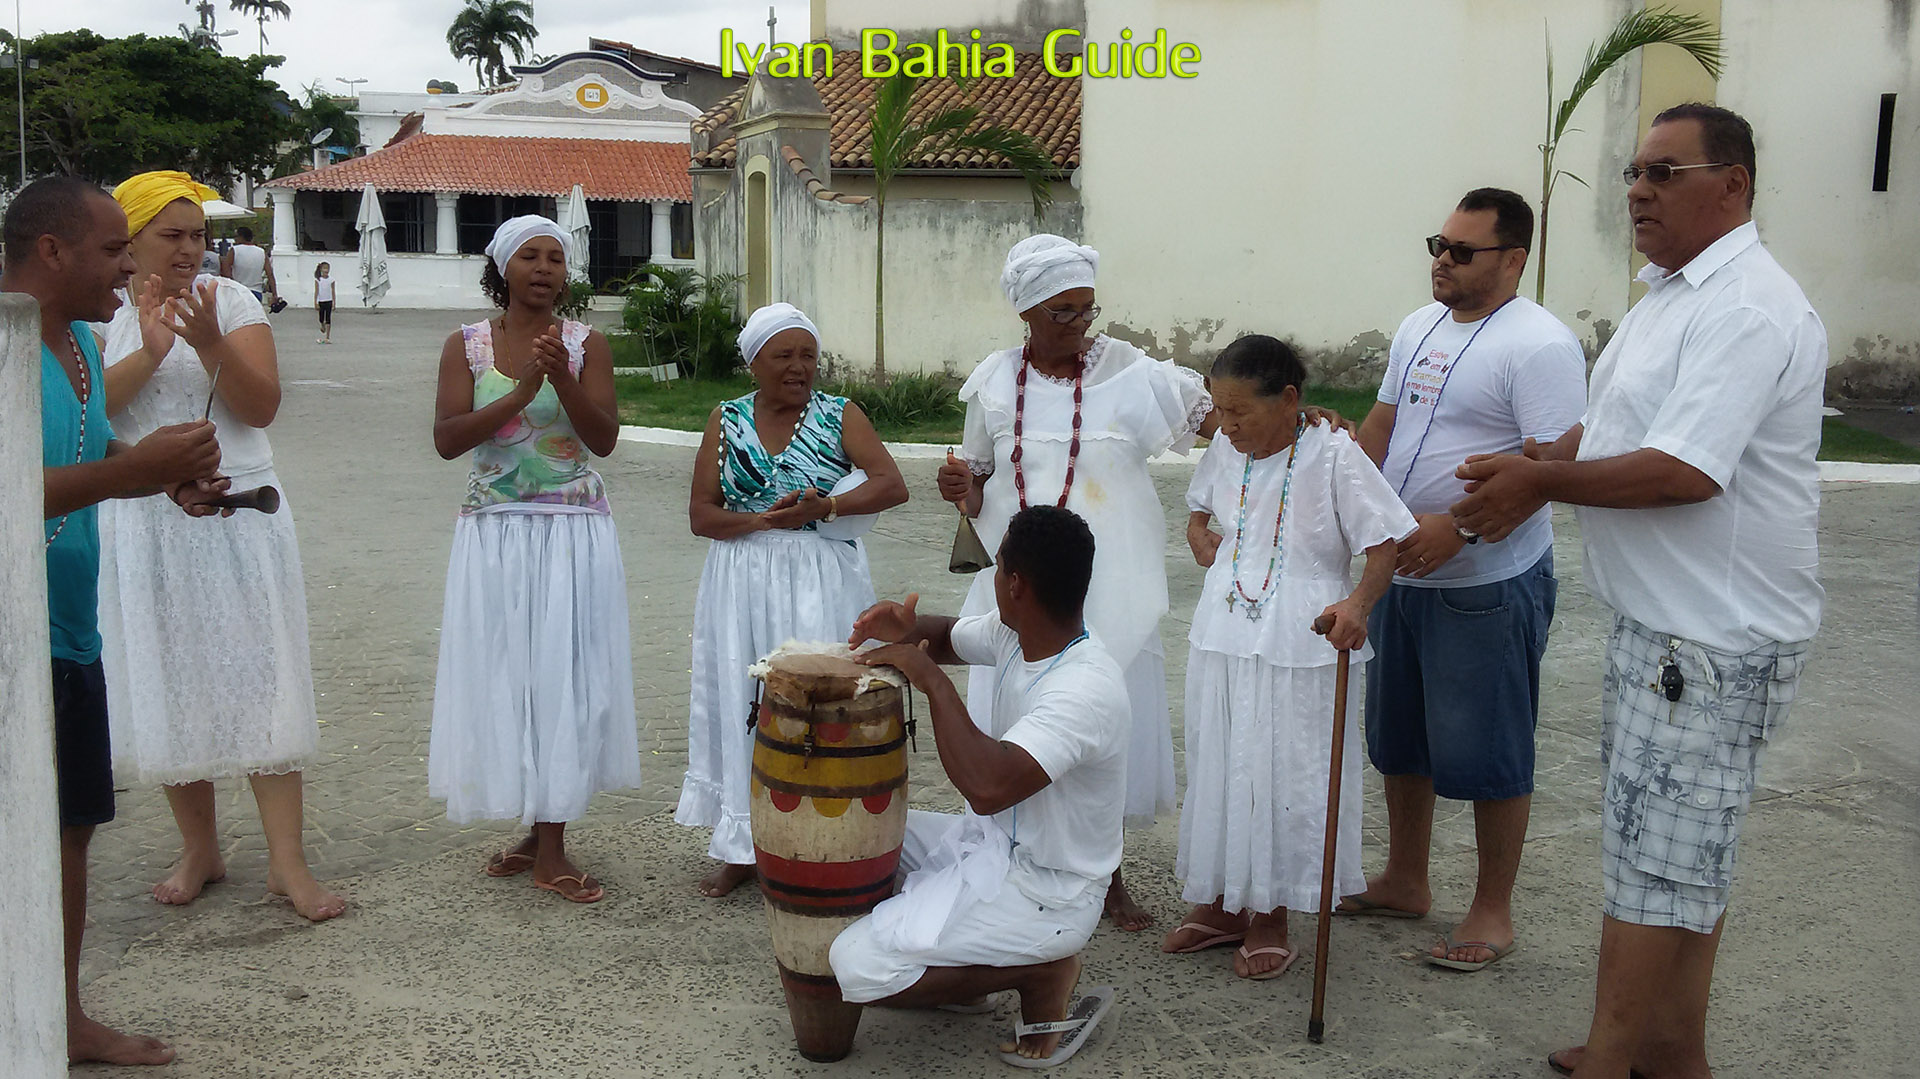 Candomblé offering to the goddess Yemanja in Monte Serrat - with Ivan's Salvador da Bahia & Chapada Diamantiana national park's official tour guide